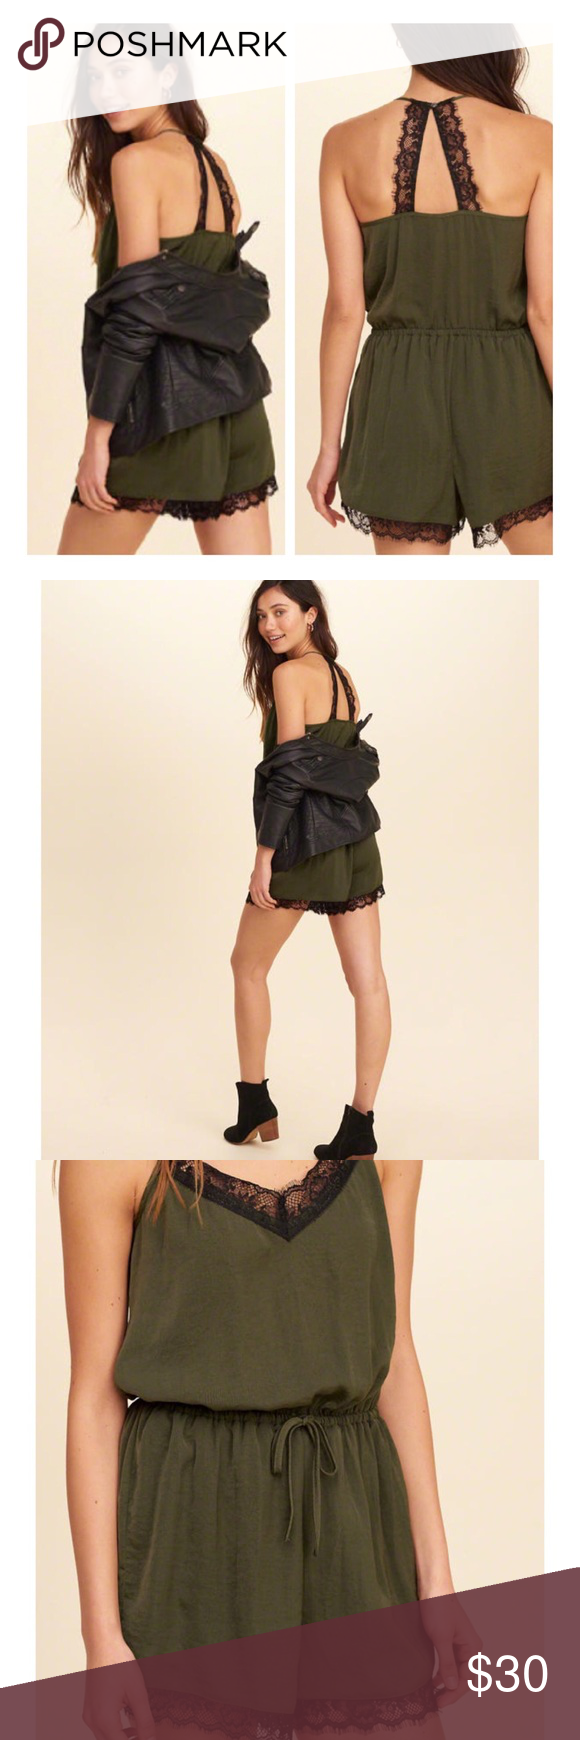 🐍Lace trim satin romper🐍 Fall ready romper with black lace trim Comfy and cute, and 100% on trend this season 😊 Hollister Pants Track Pants & Joggers